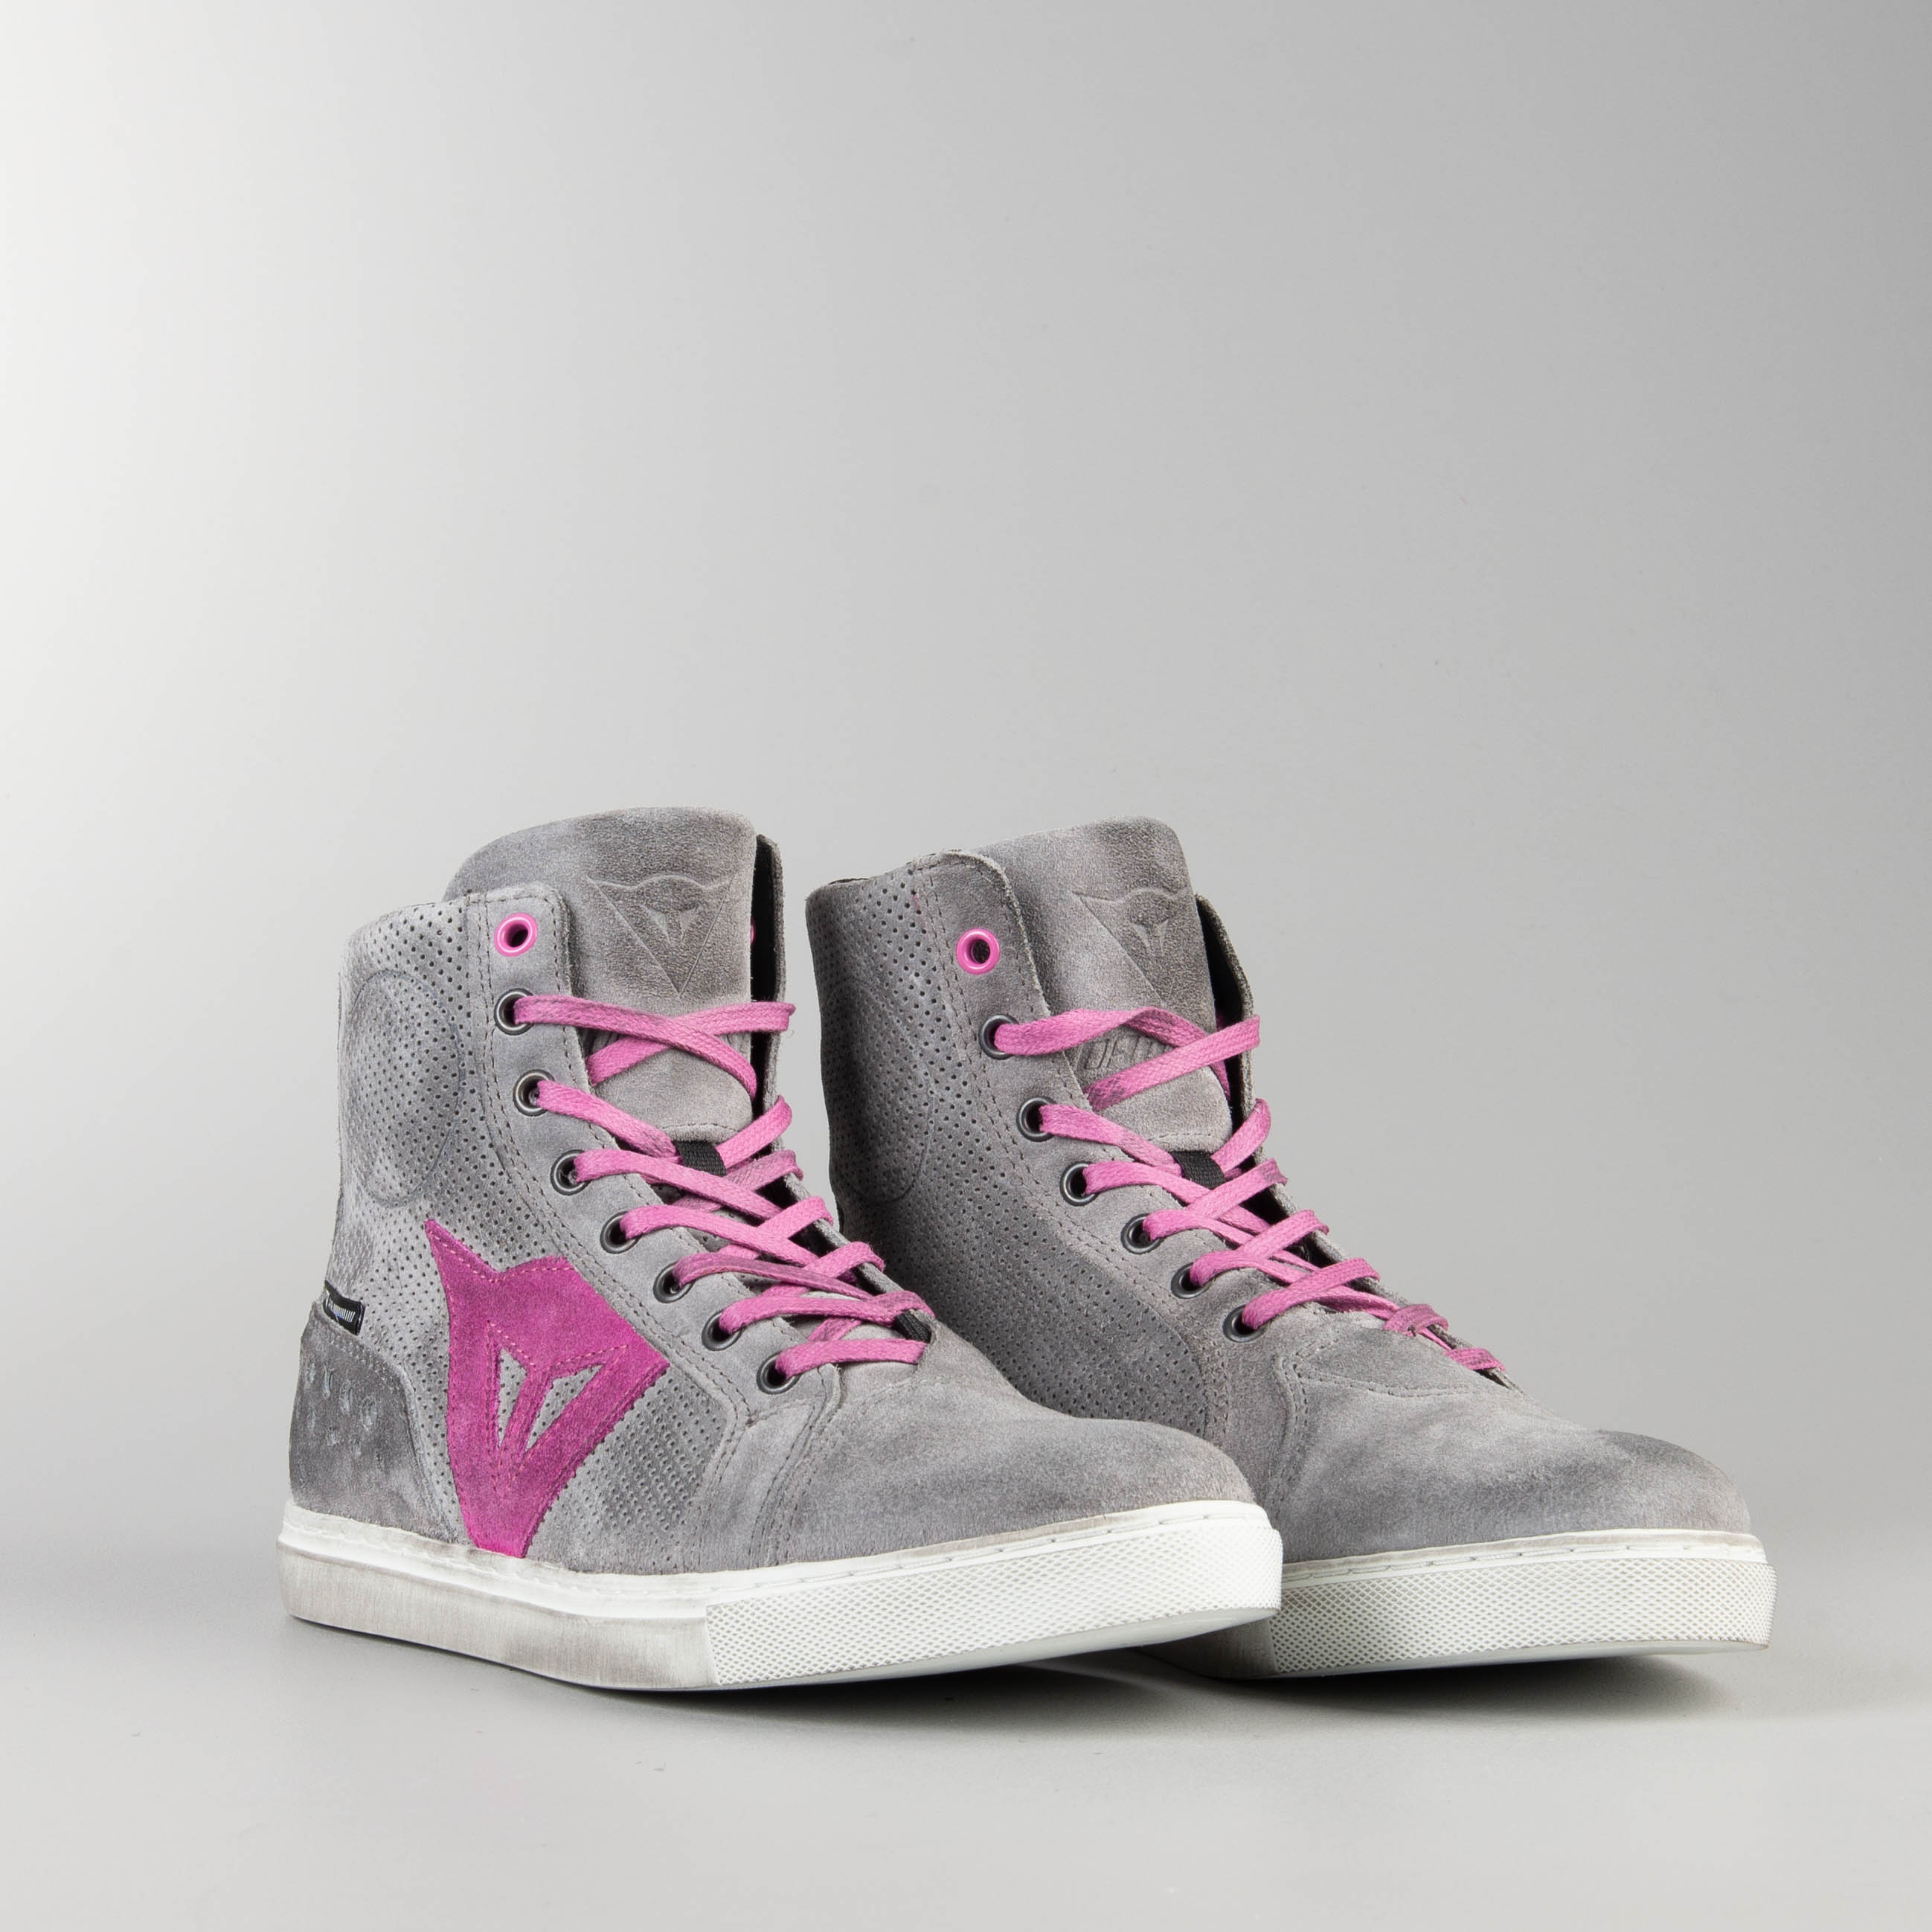 Dainese Street Biker Air Women's Shoes Grey Orchid Now 15